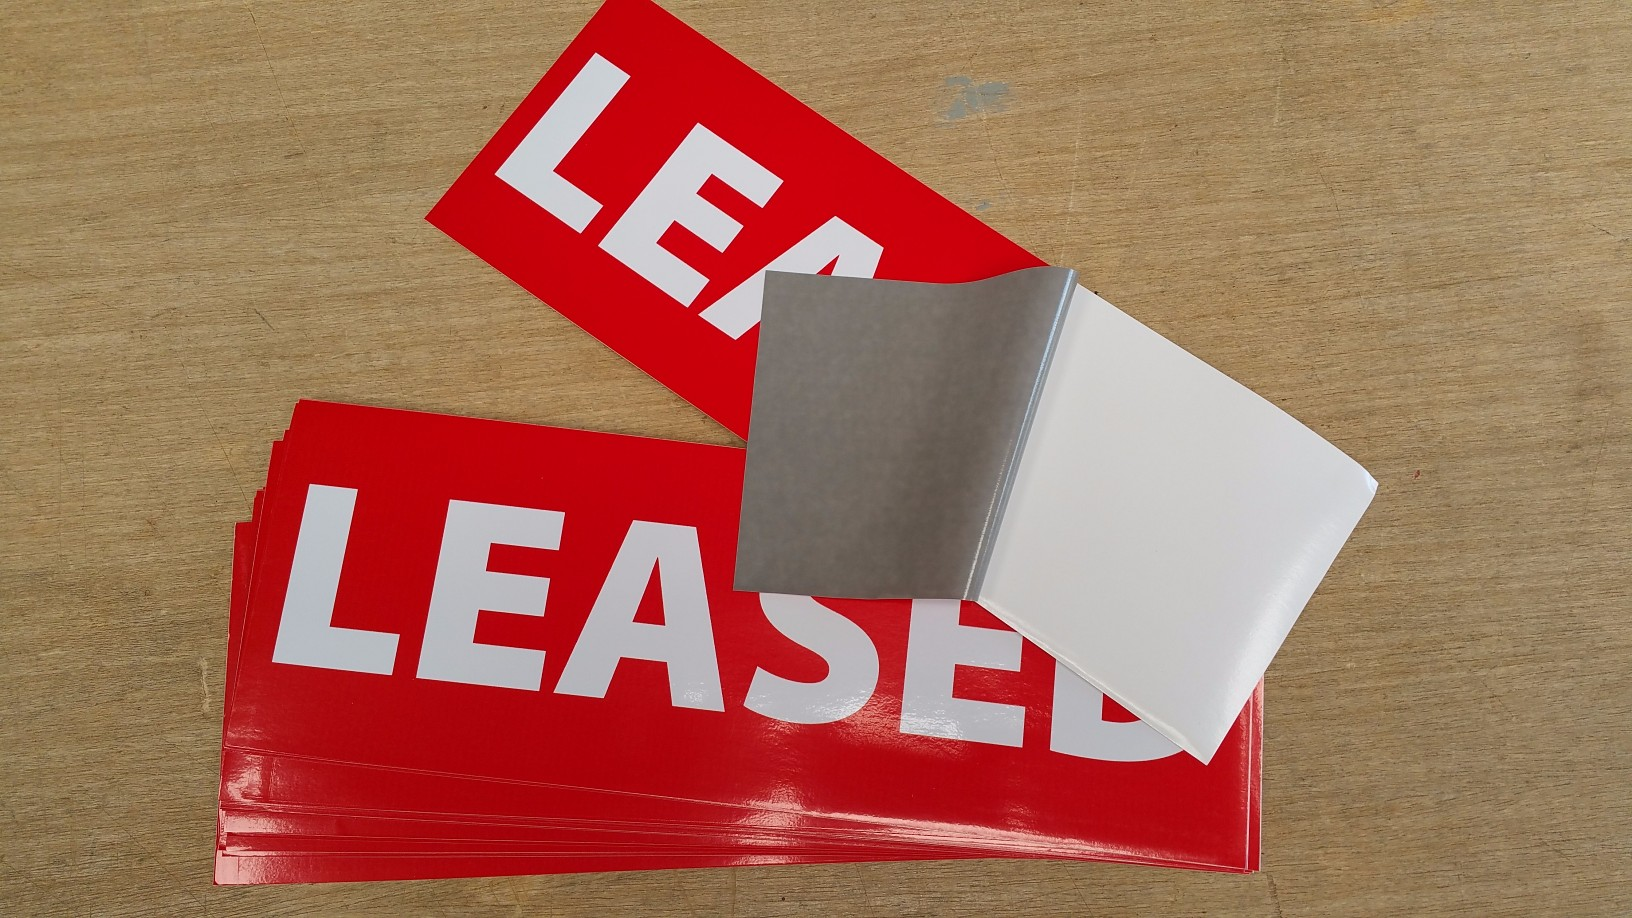 sold-sticker-leased1.jpg